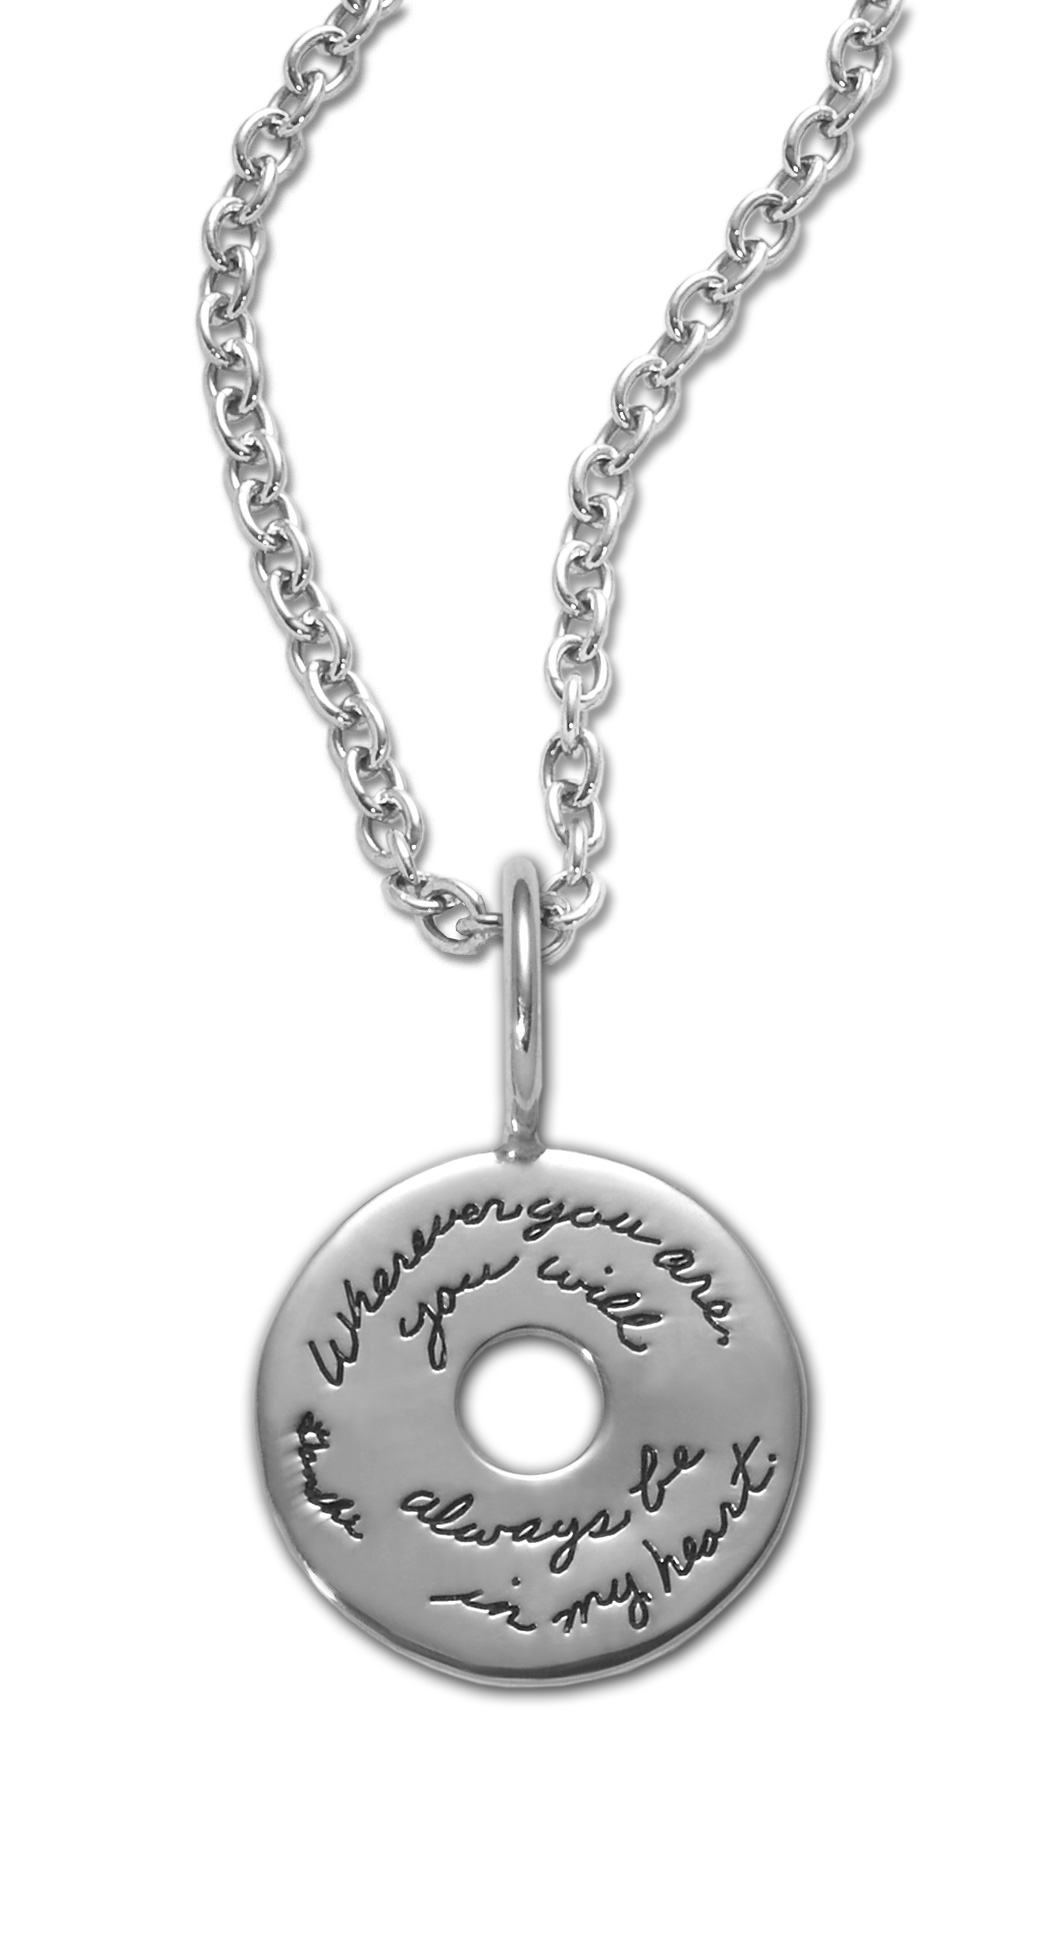 Sterling Silver circular Inspirational necklace with center circle cutout engraving reads: Wherever you are, you will always be in my heart. - Mahatma Gandhi